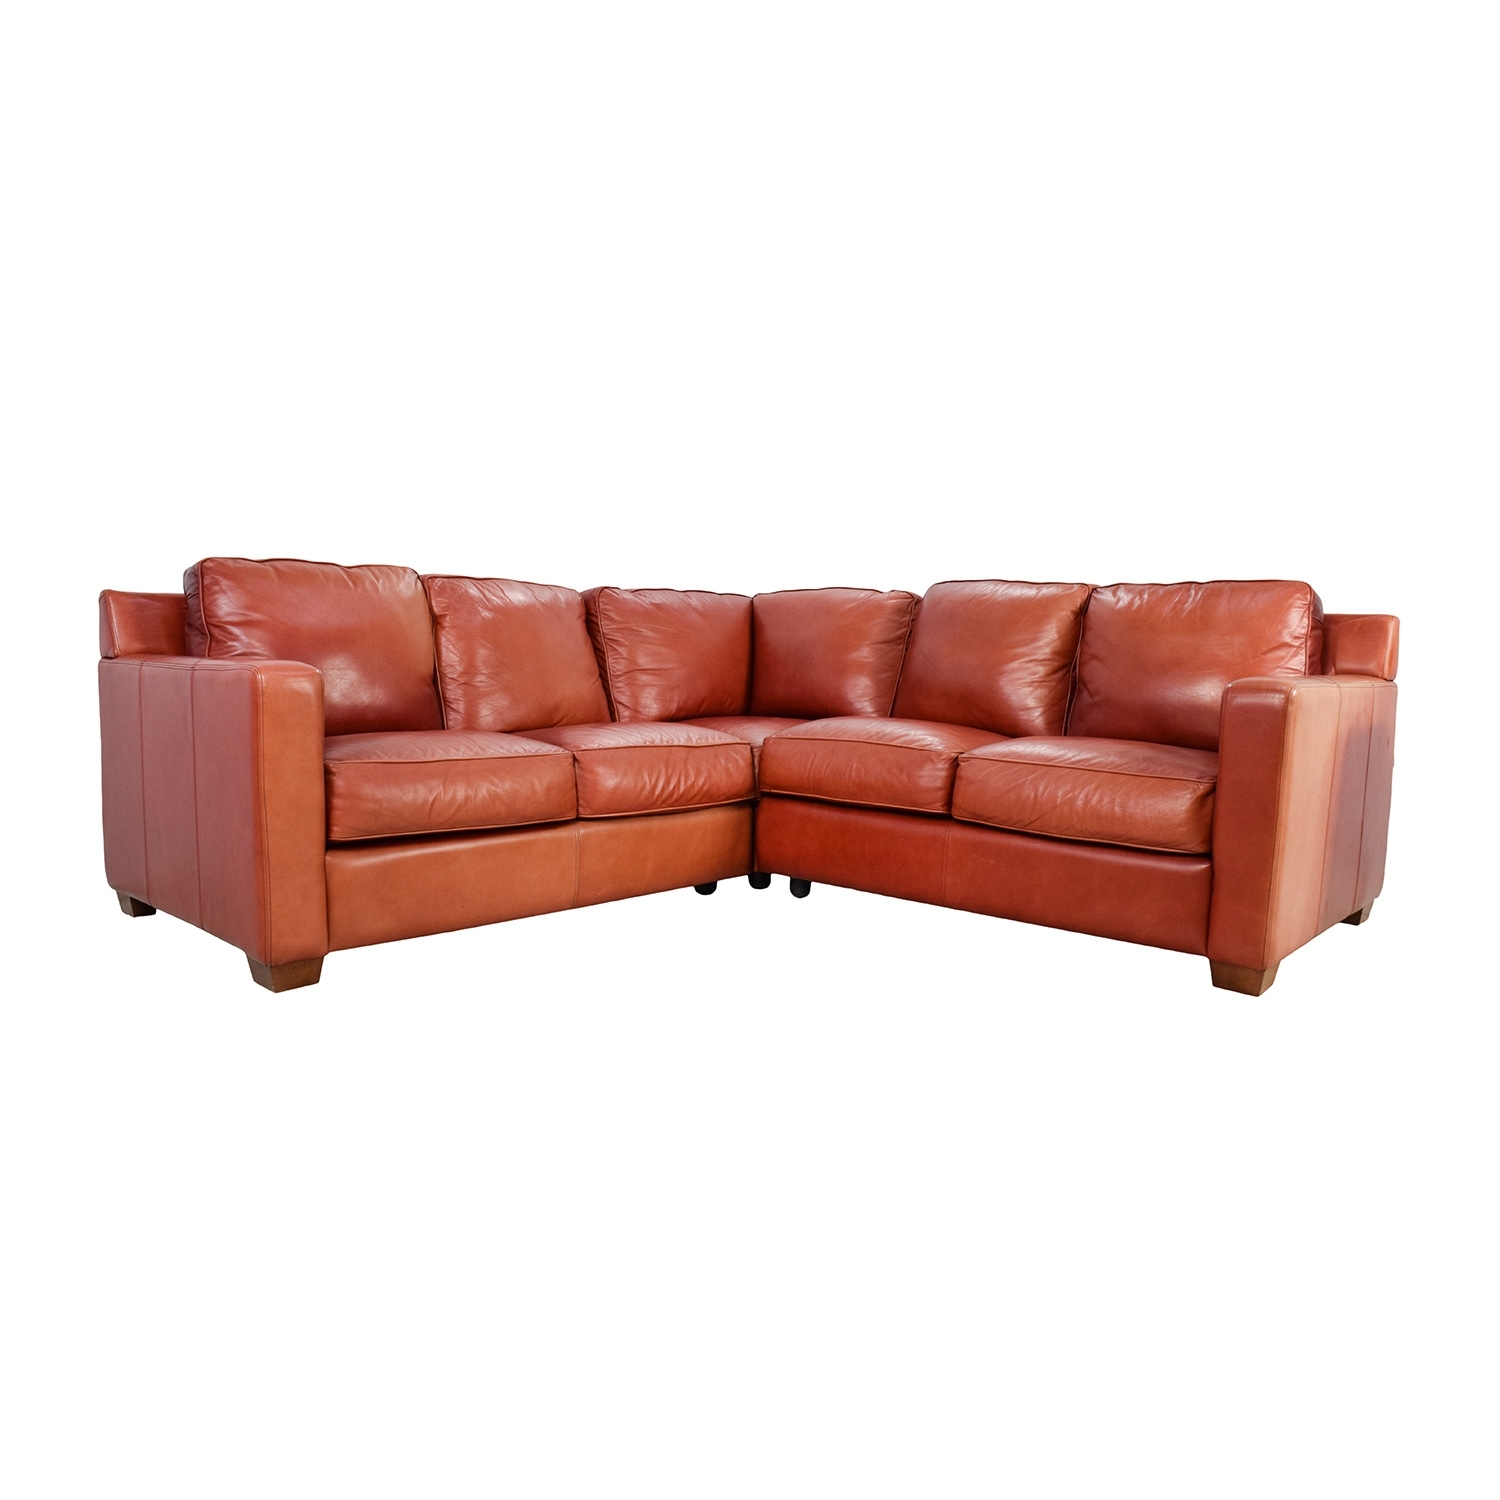 68% Off – Thomasville Thomasville Red Leather Sectional / Sofas Inside Thomasville Sectional Sofas (Image 2 of 10)